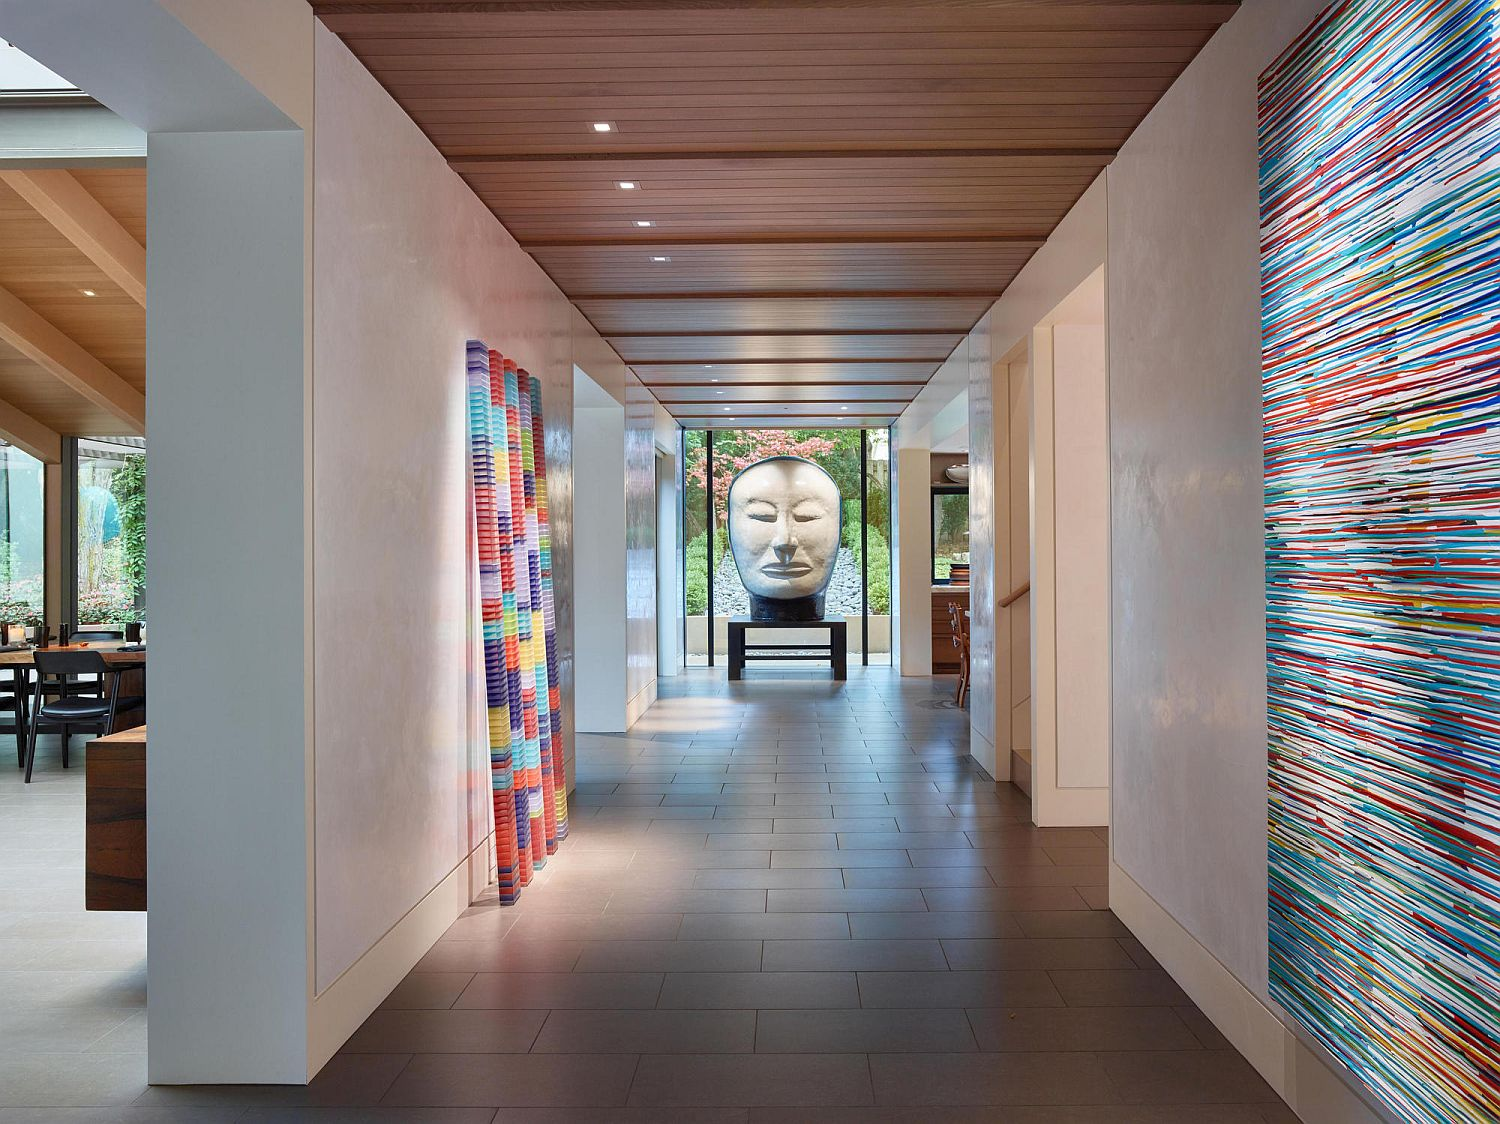 Light-filled interior of the home with colorful art installations